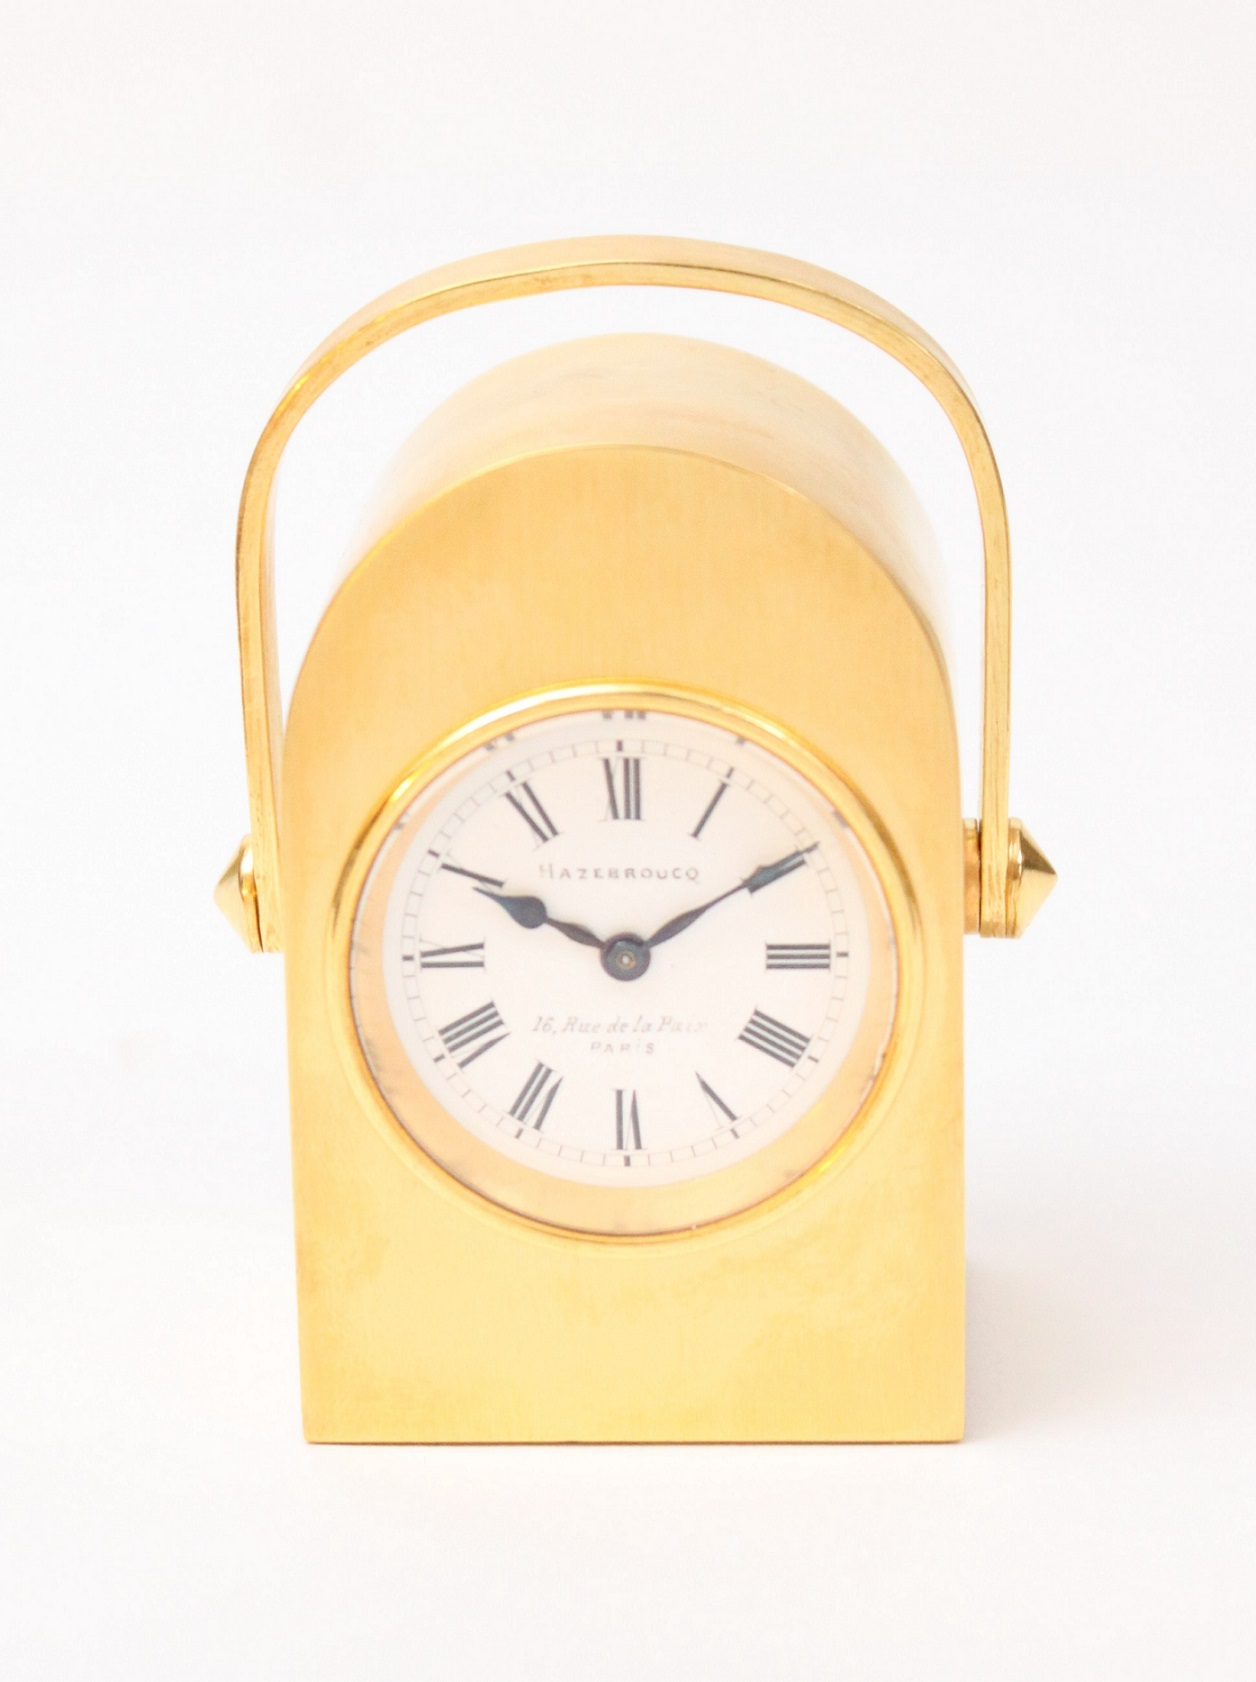 miniature-French-arched-antique-travel-boudoir-gilt-brass-arched-carriage-clock-Margaine-Paris